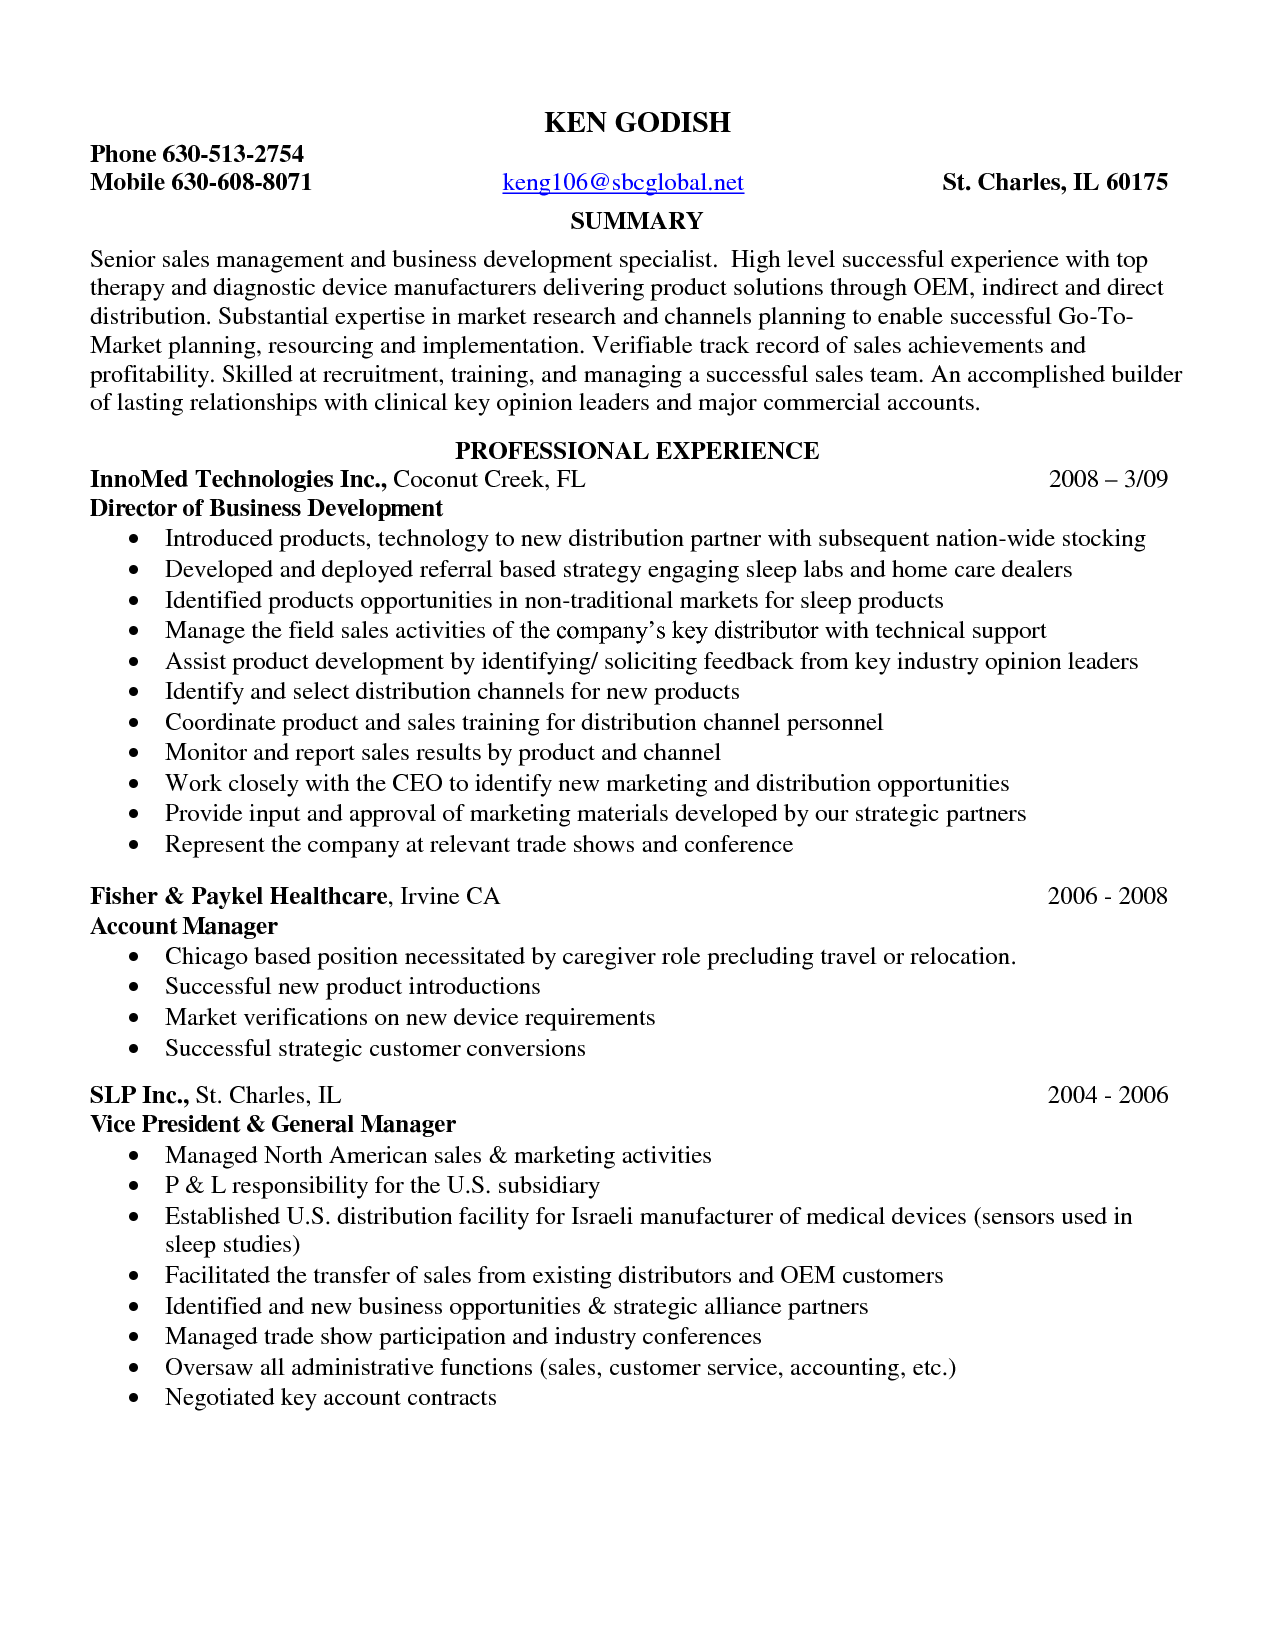 Career Objective For Biotechnology Resume Sample Resume Entry Level Pharmaceutical Sales Sample